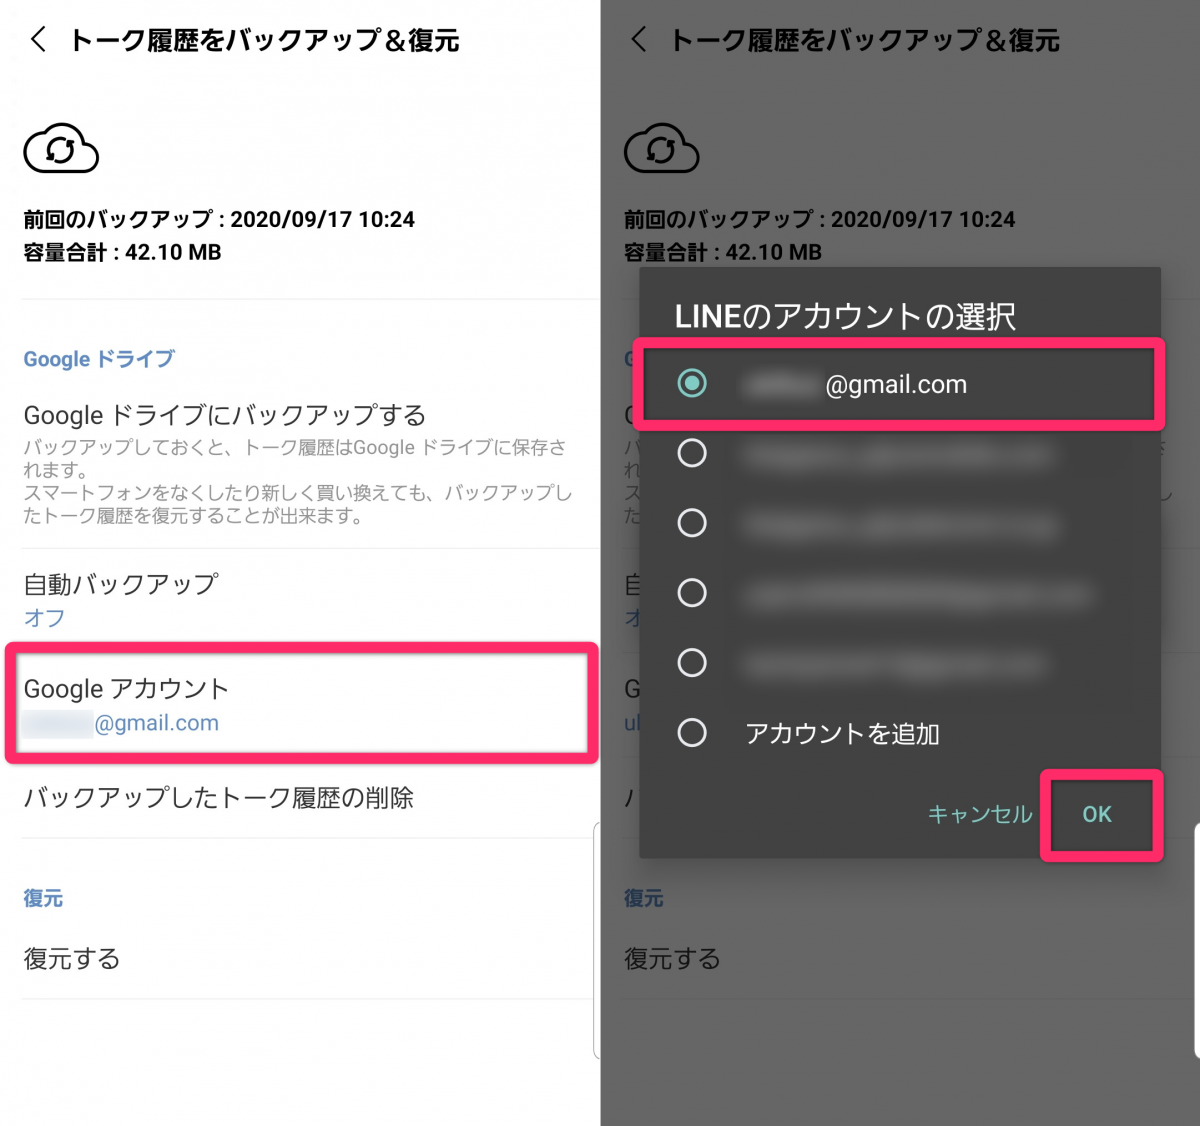 Android ライン バックアップ